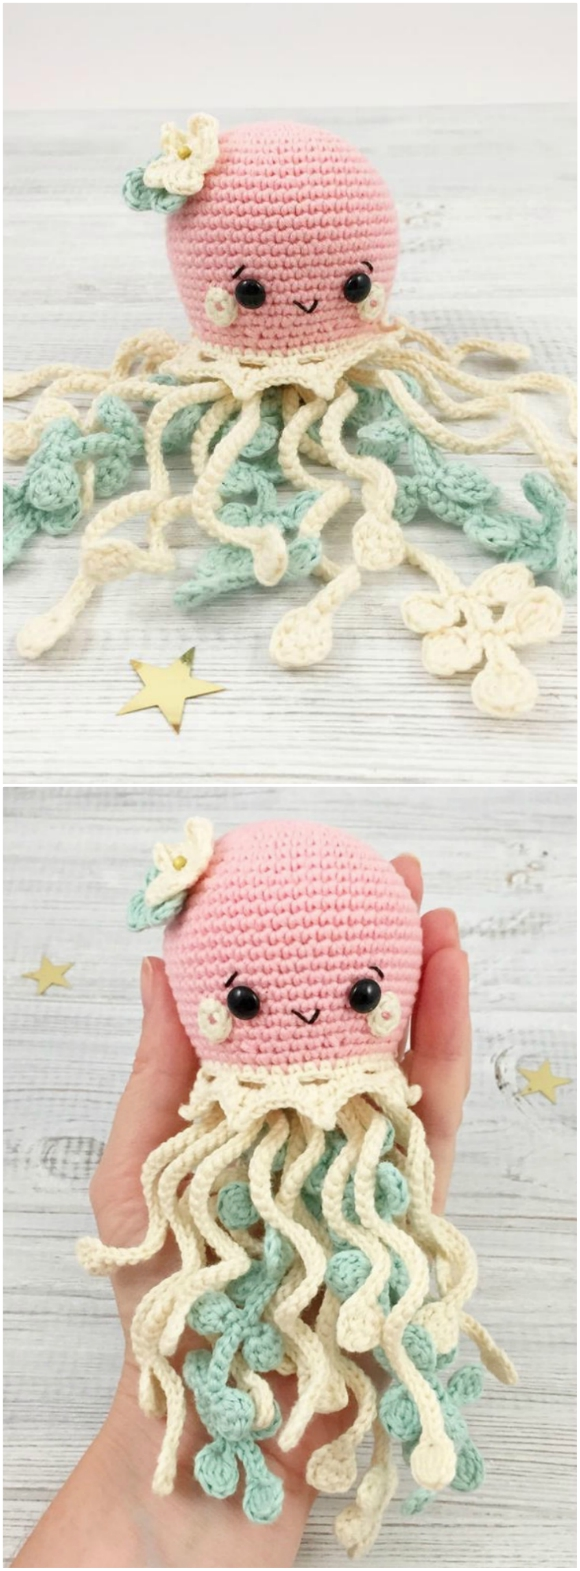 Our Favorite Pinterest Crochet Patterns | The WHOot